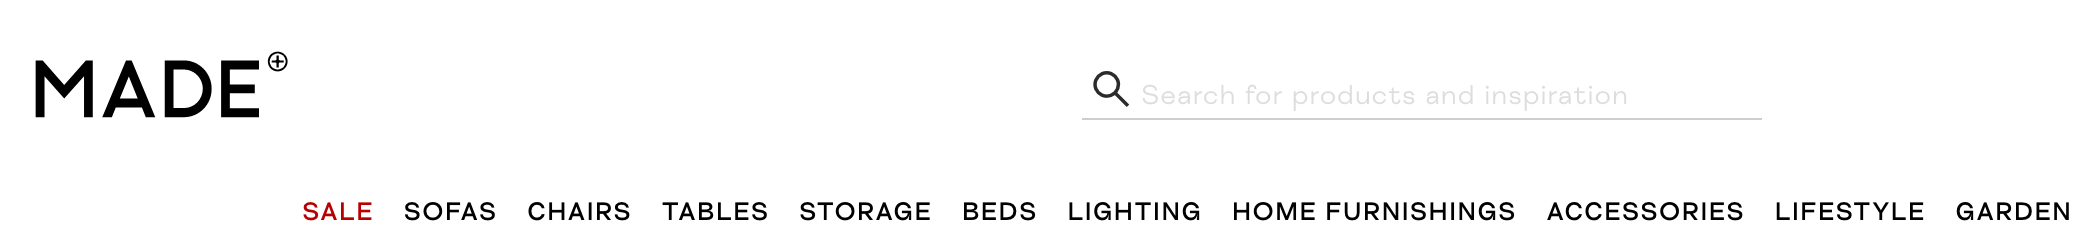 made.com_on-site_search